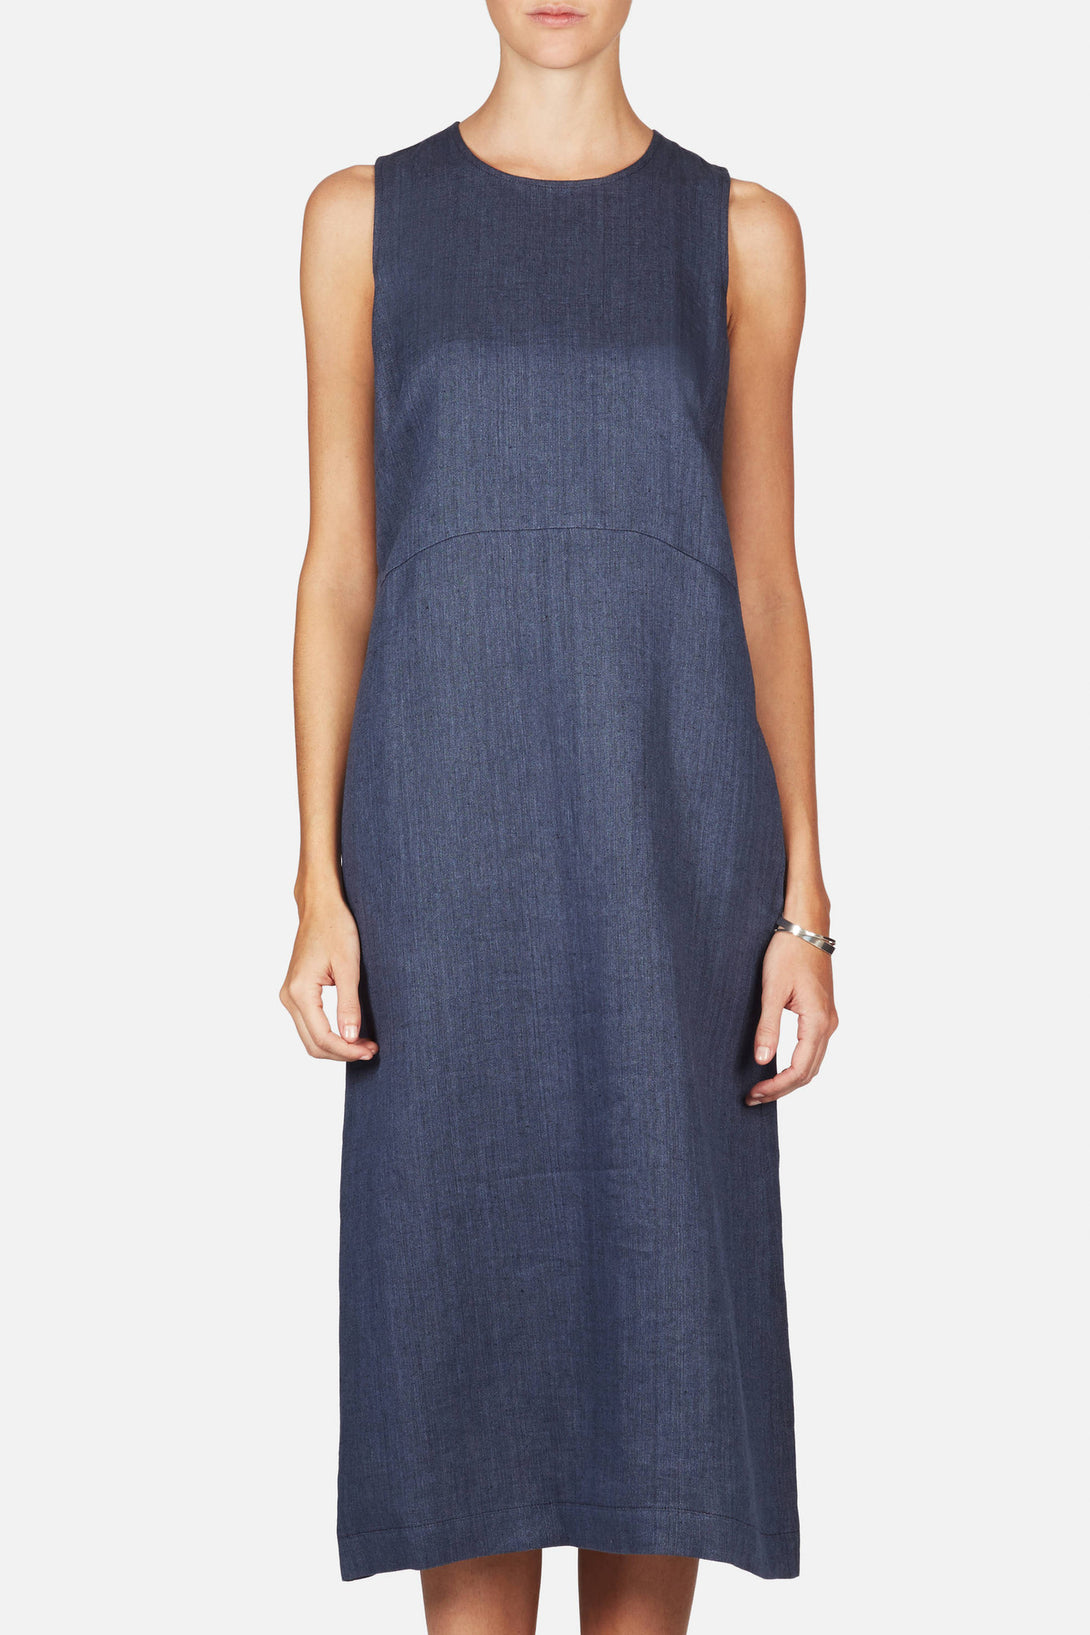 Champtaloup Dress - Washed Blue